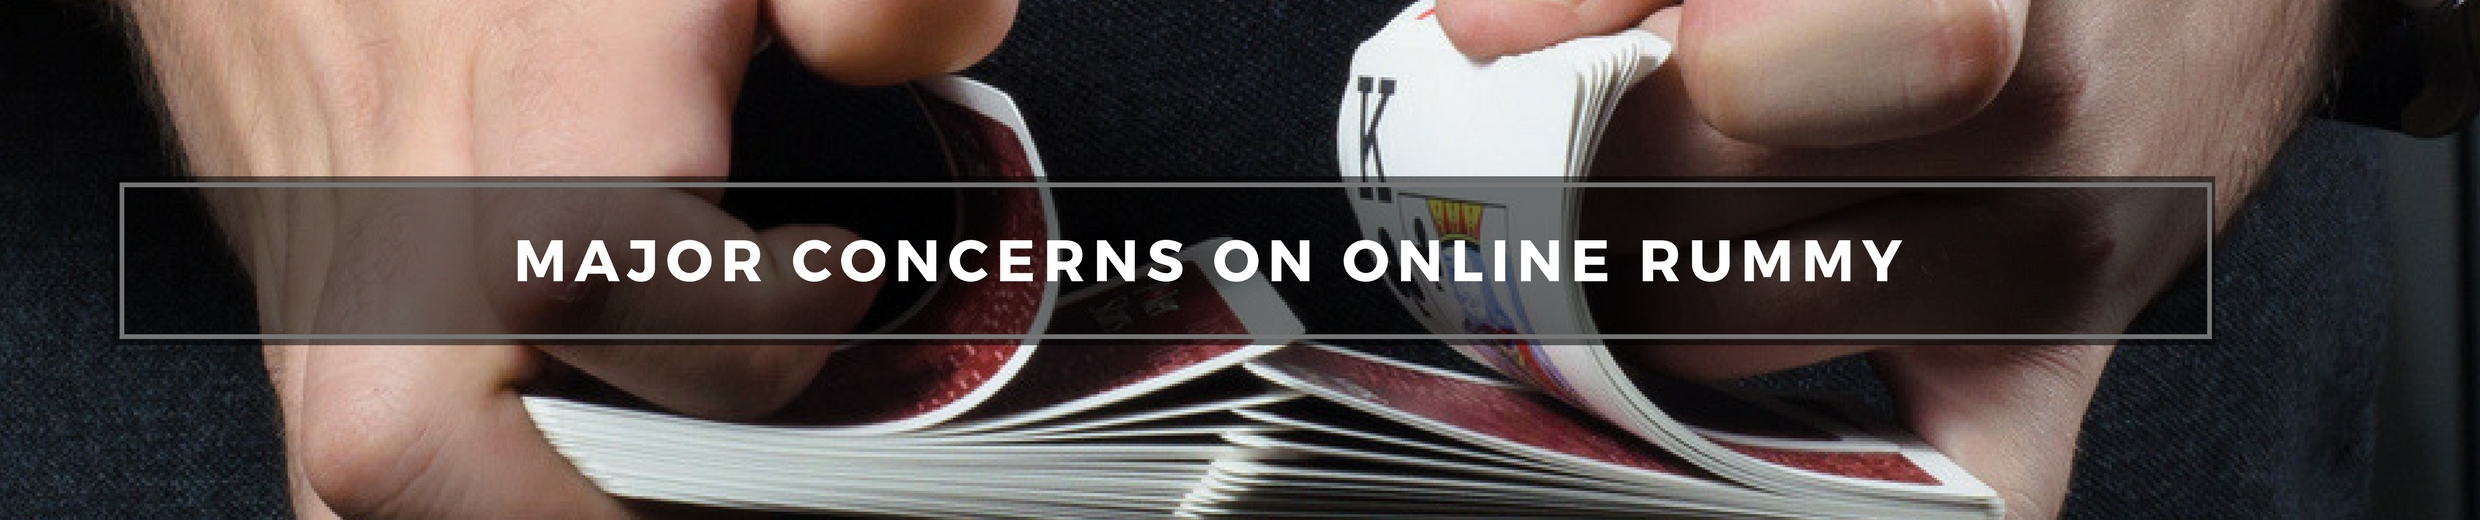 Major Concerns on Online Rummy